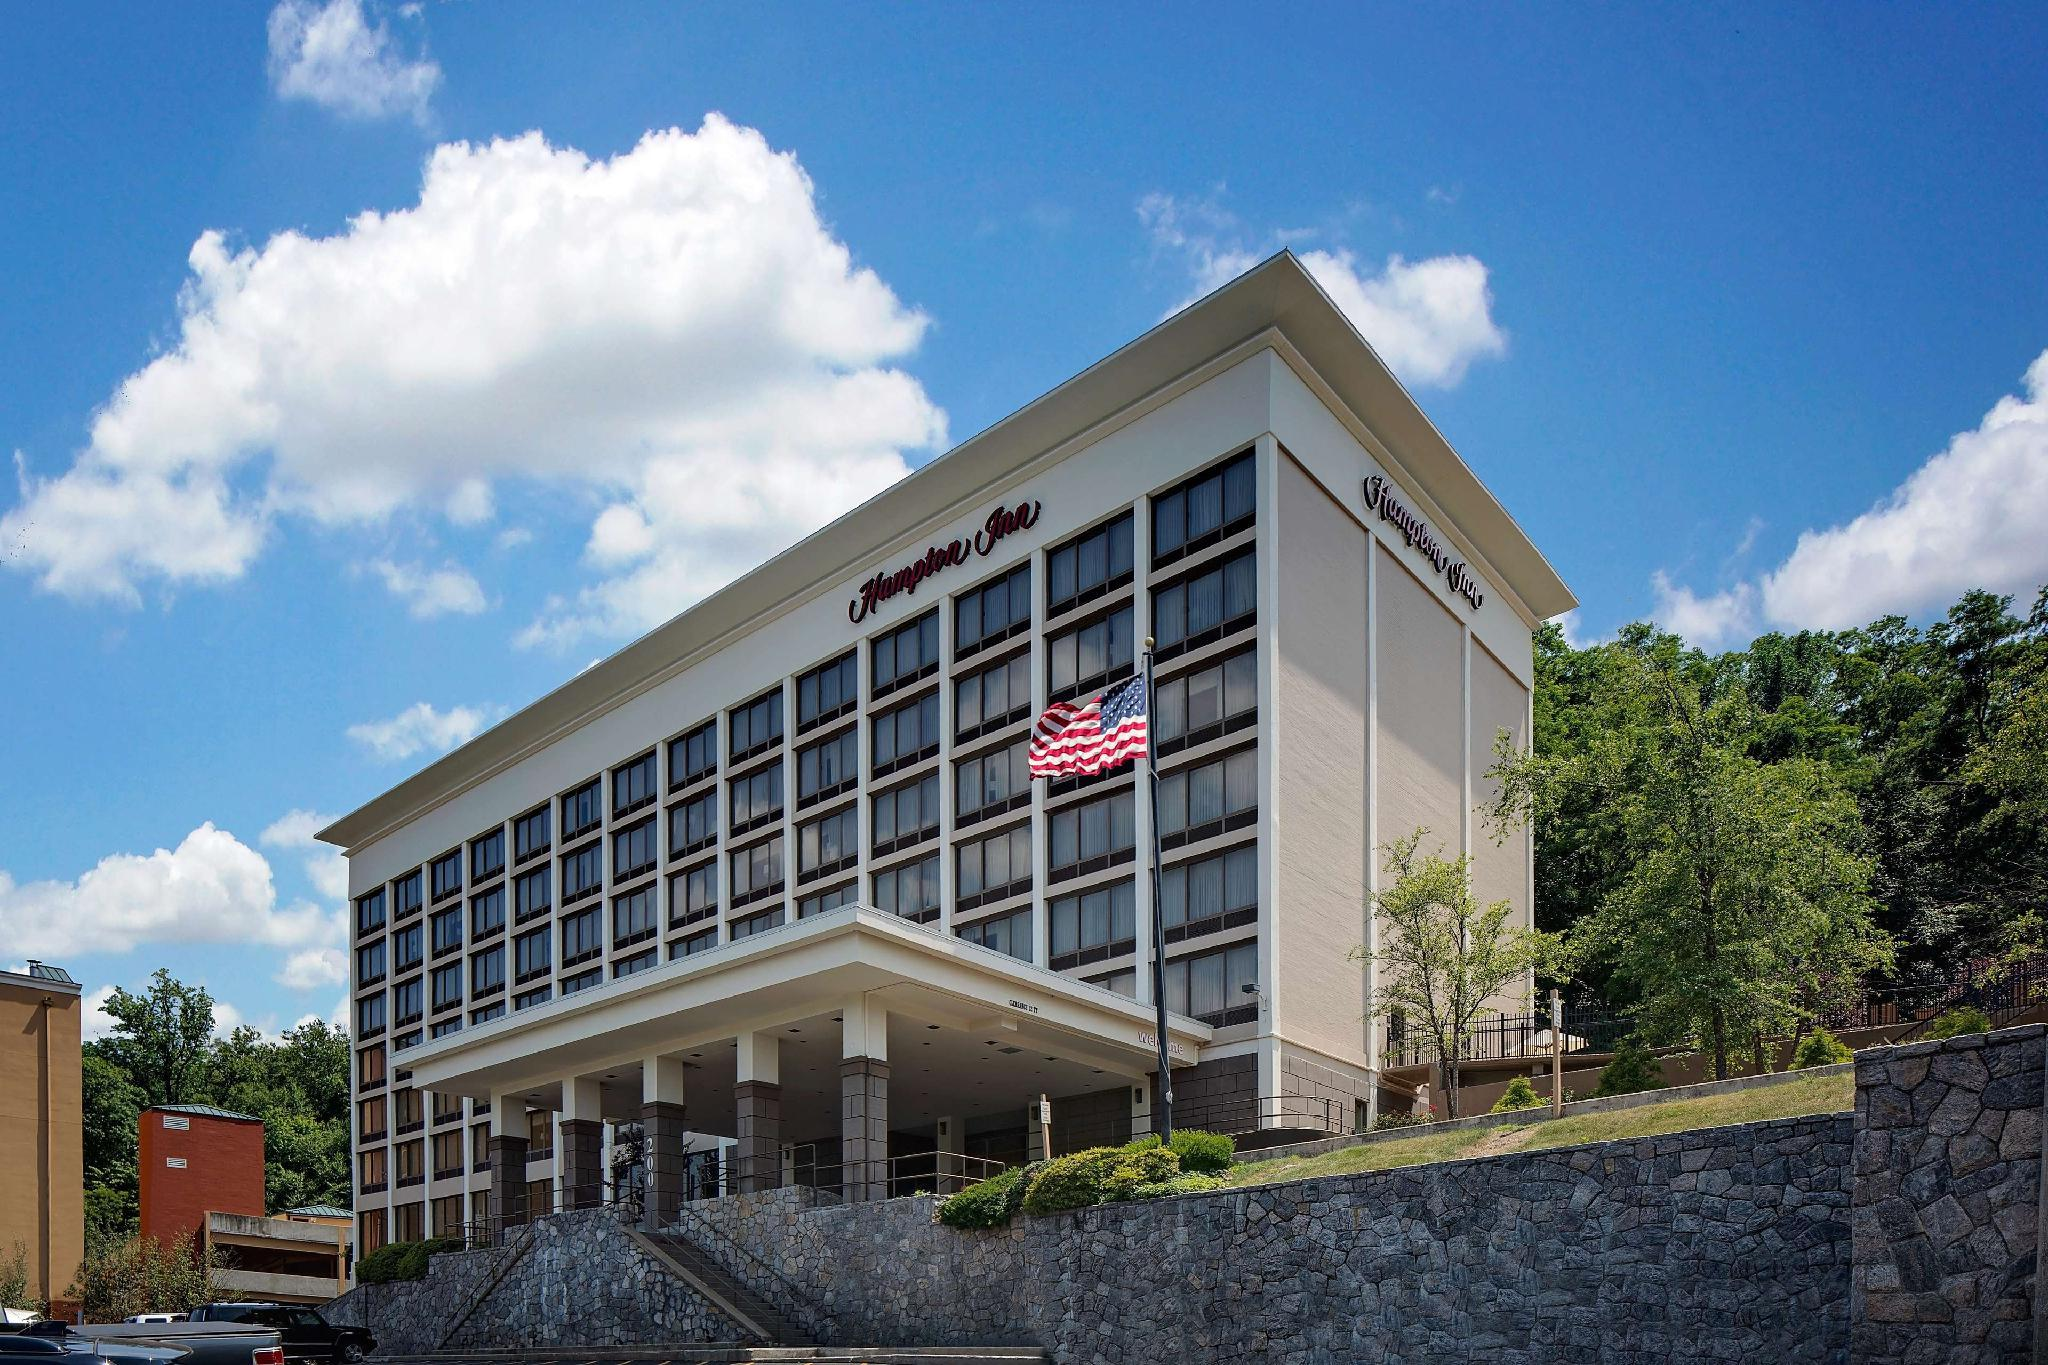 Hampton Inn White Plains - Tarrytown Hotel, Westchester